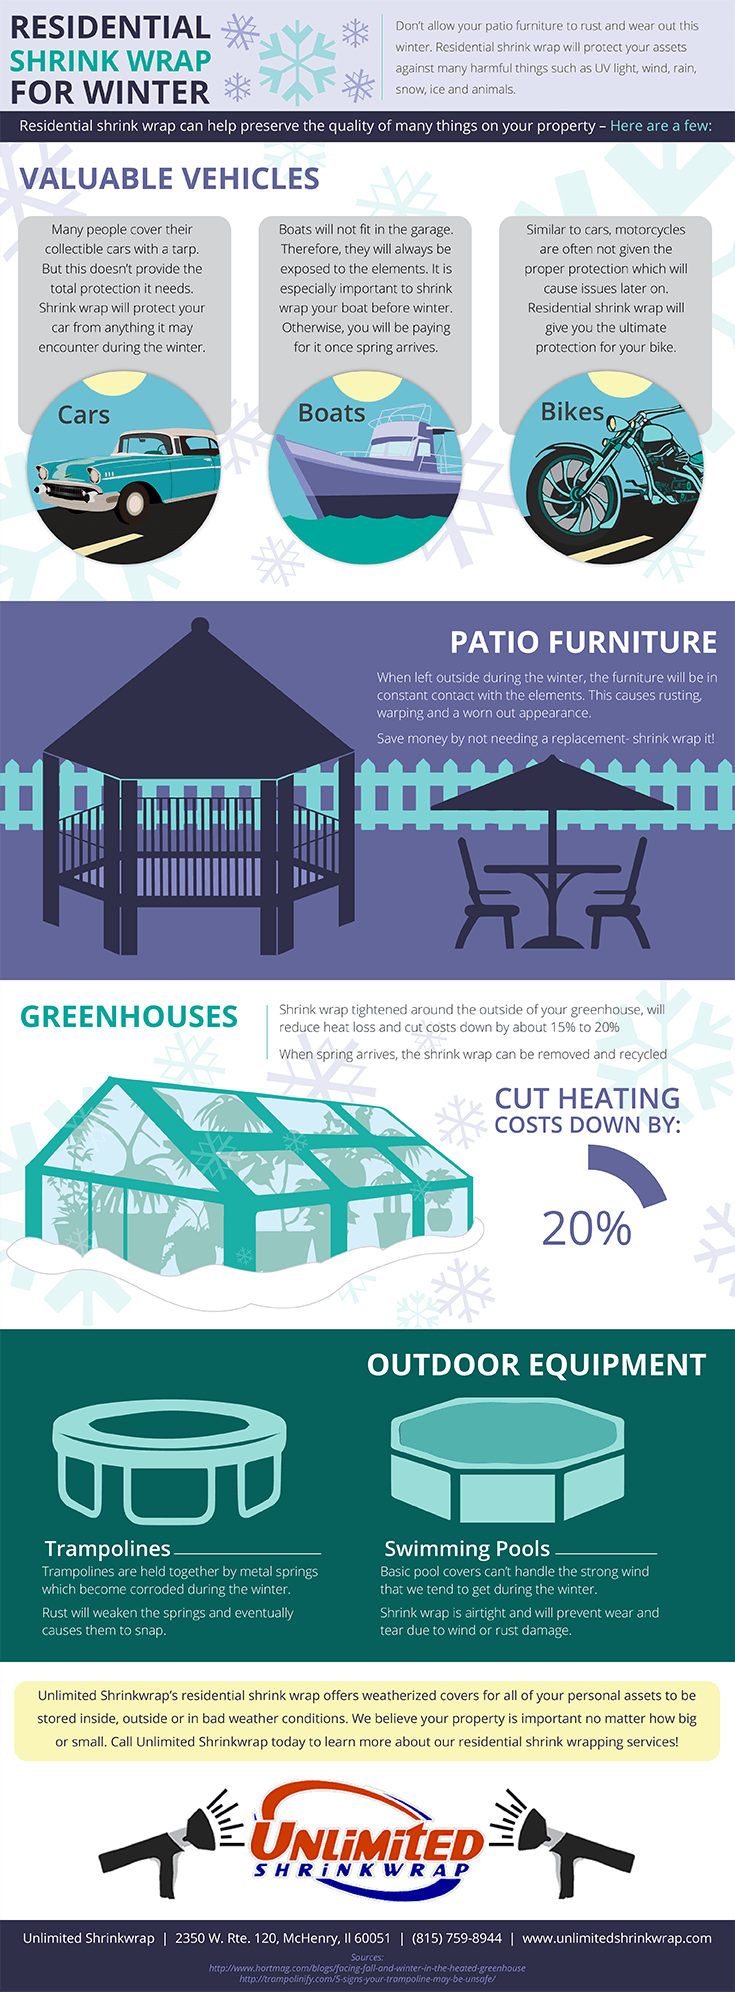 Infographic illustrating how shrink wrap can be used to protect residential items during the winter.